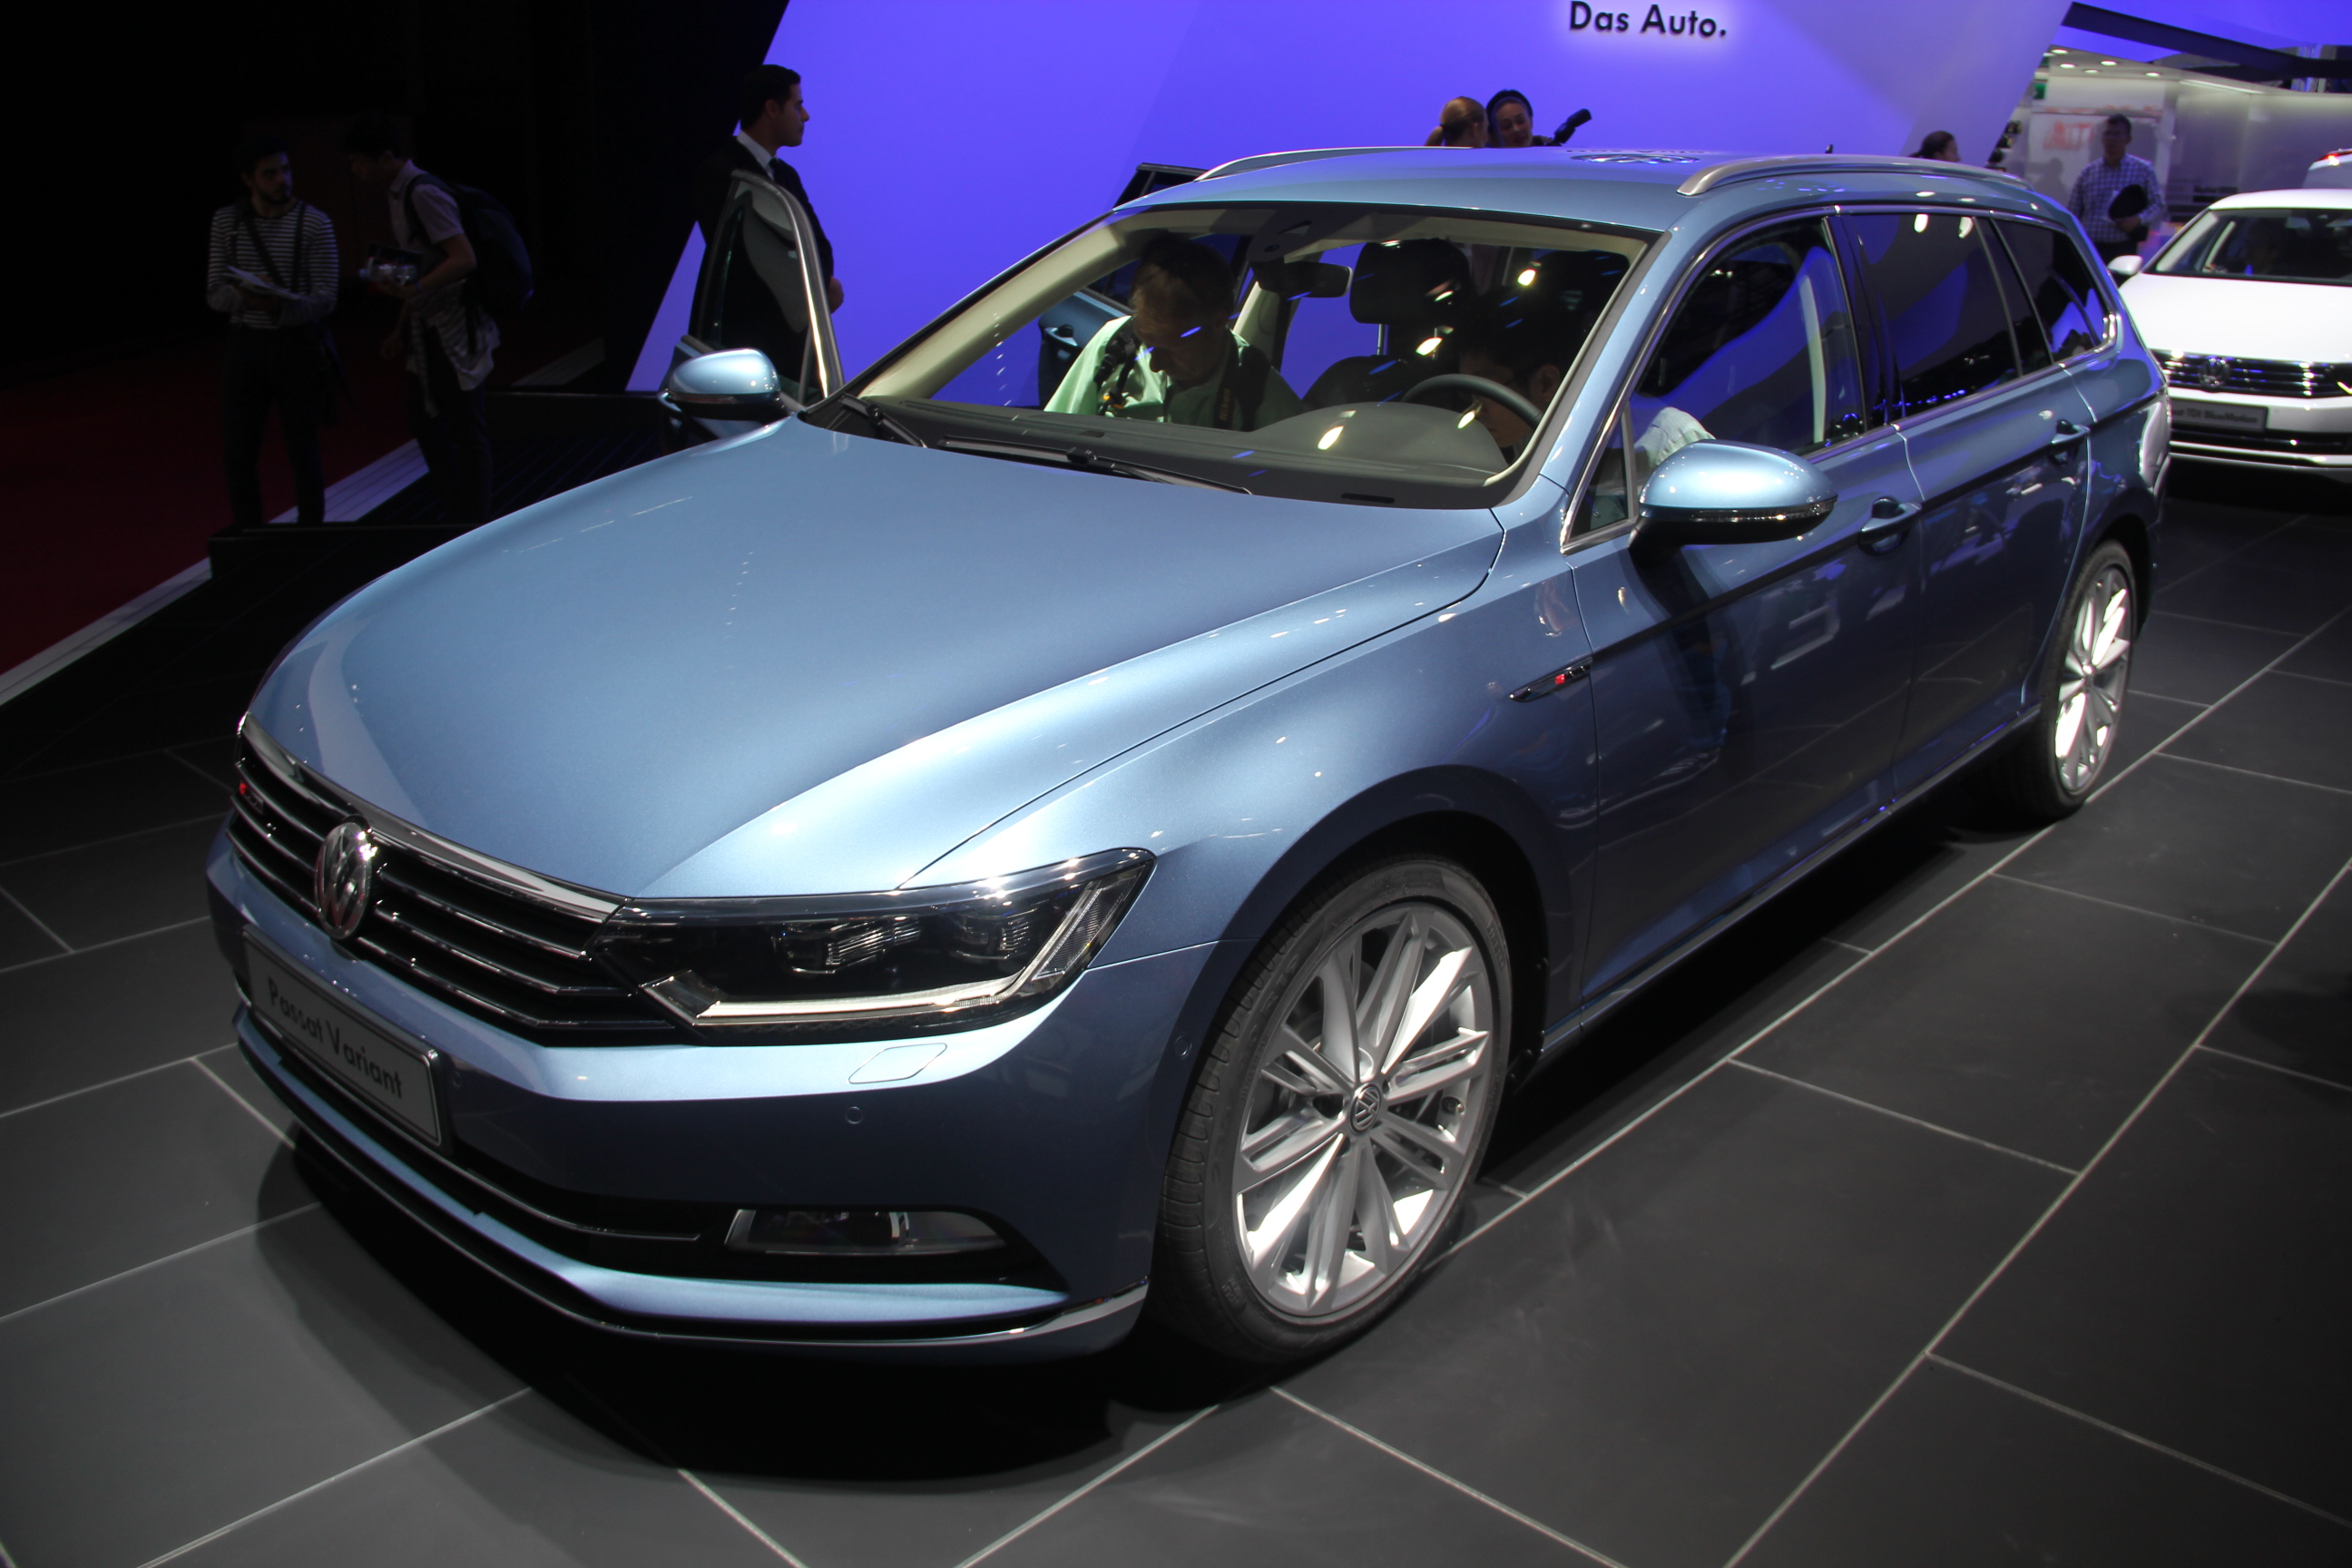 volkswagen passat 8 sw balle de break vid o en direct du salon de paris 2014. Black Bedroom Furniture Sets. Home Design Ideas